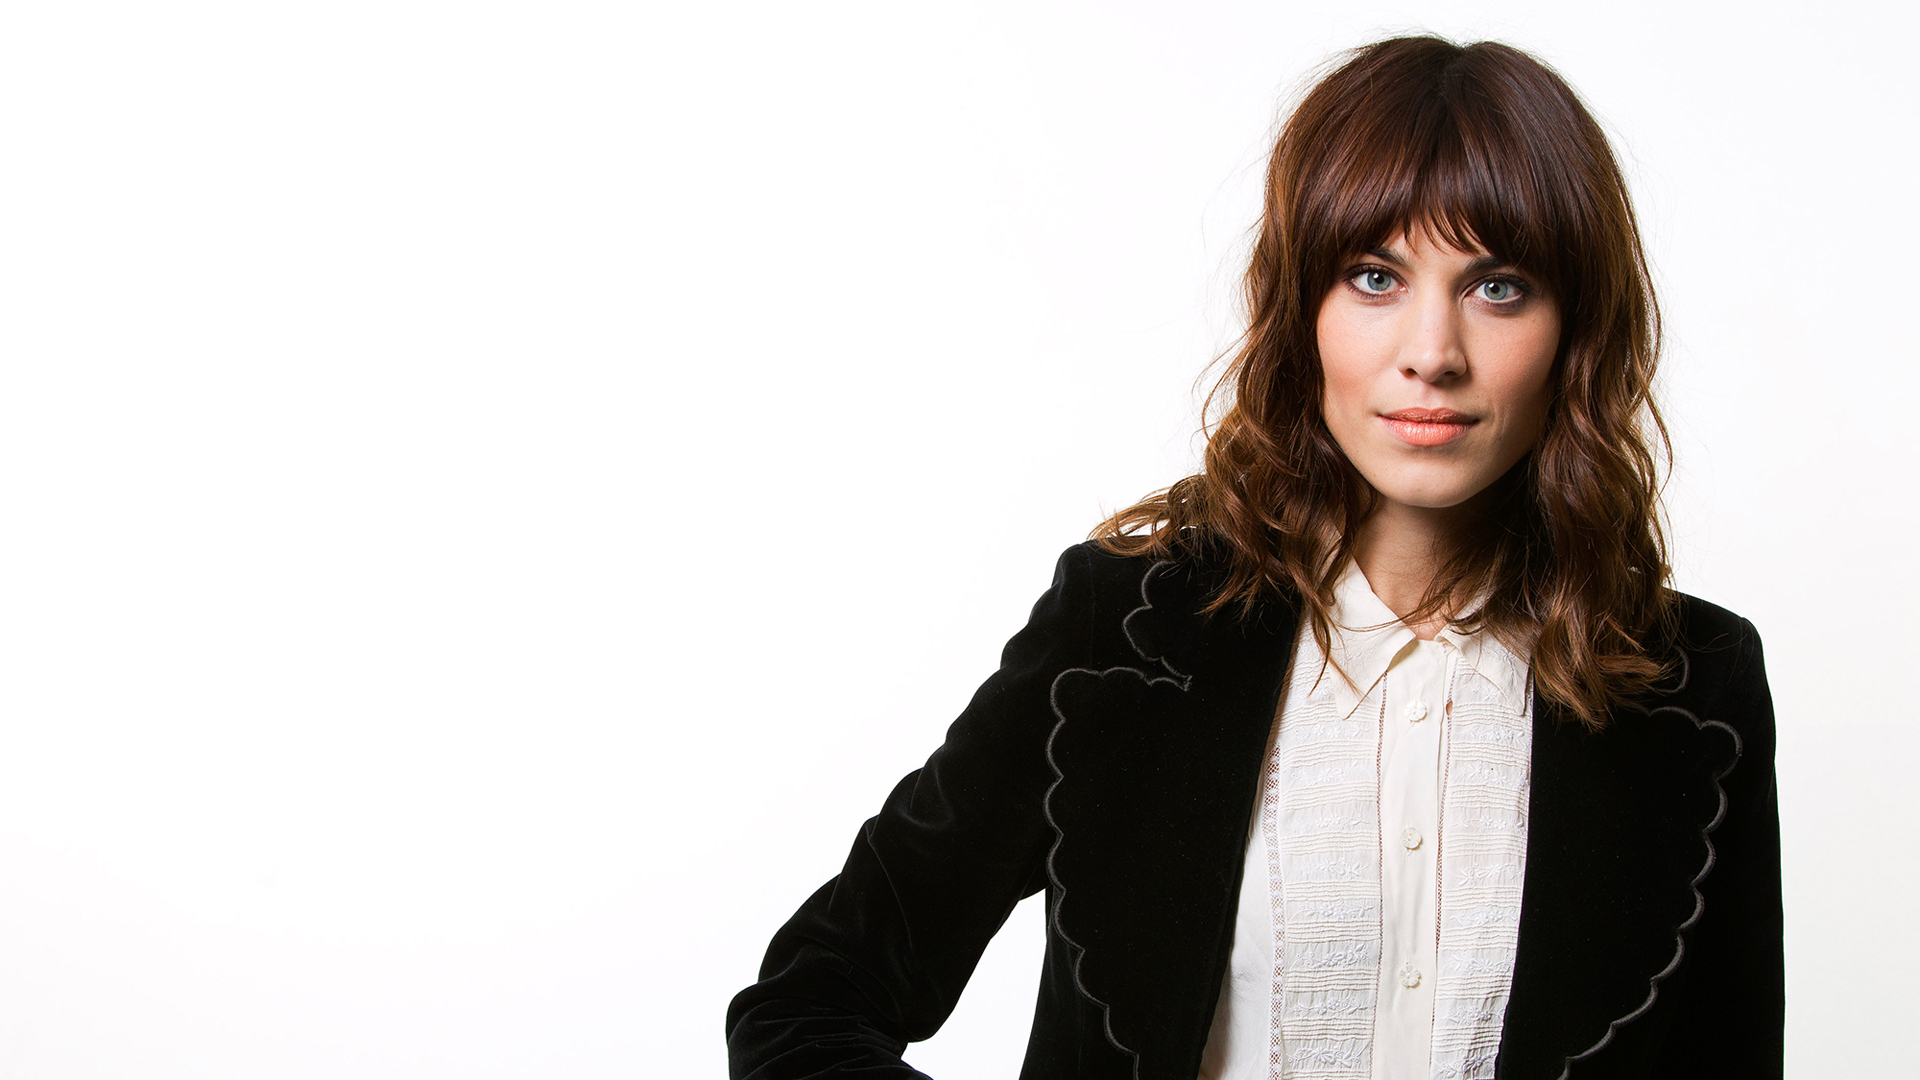 Best Images Of Alexa Chung